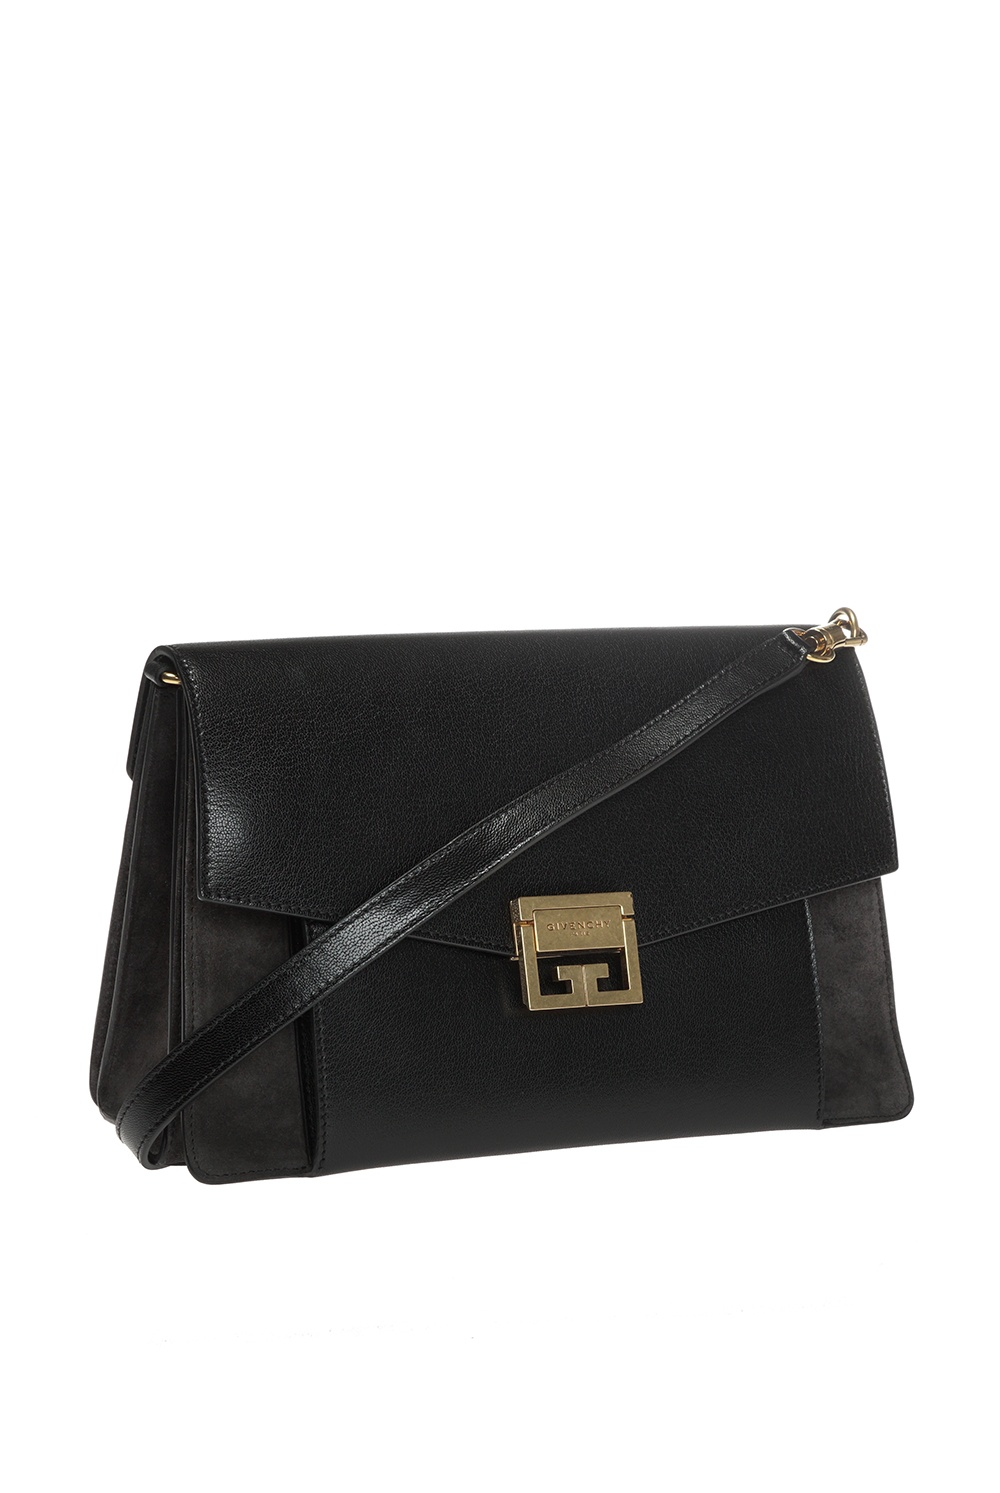 Givenchy 'GV3' shoulder bag